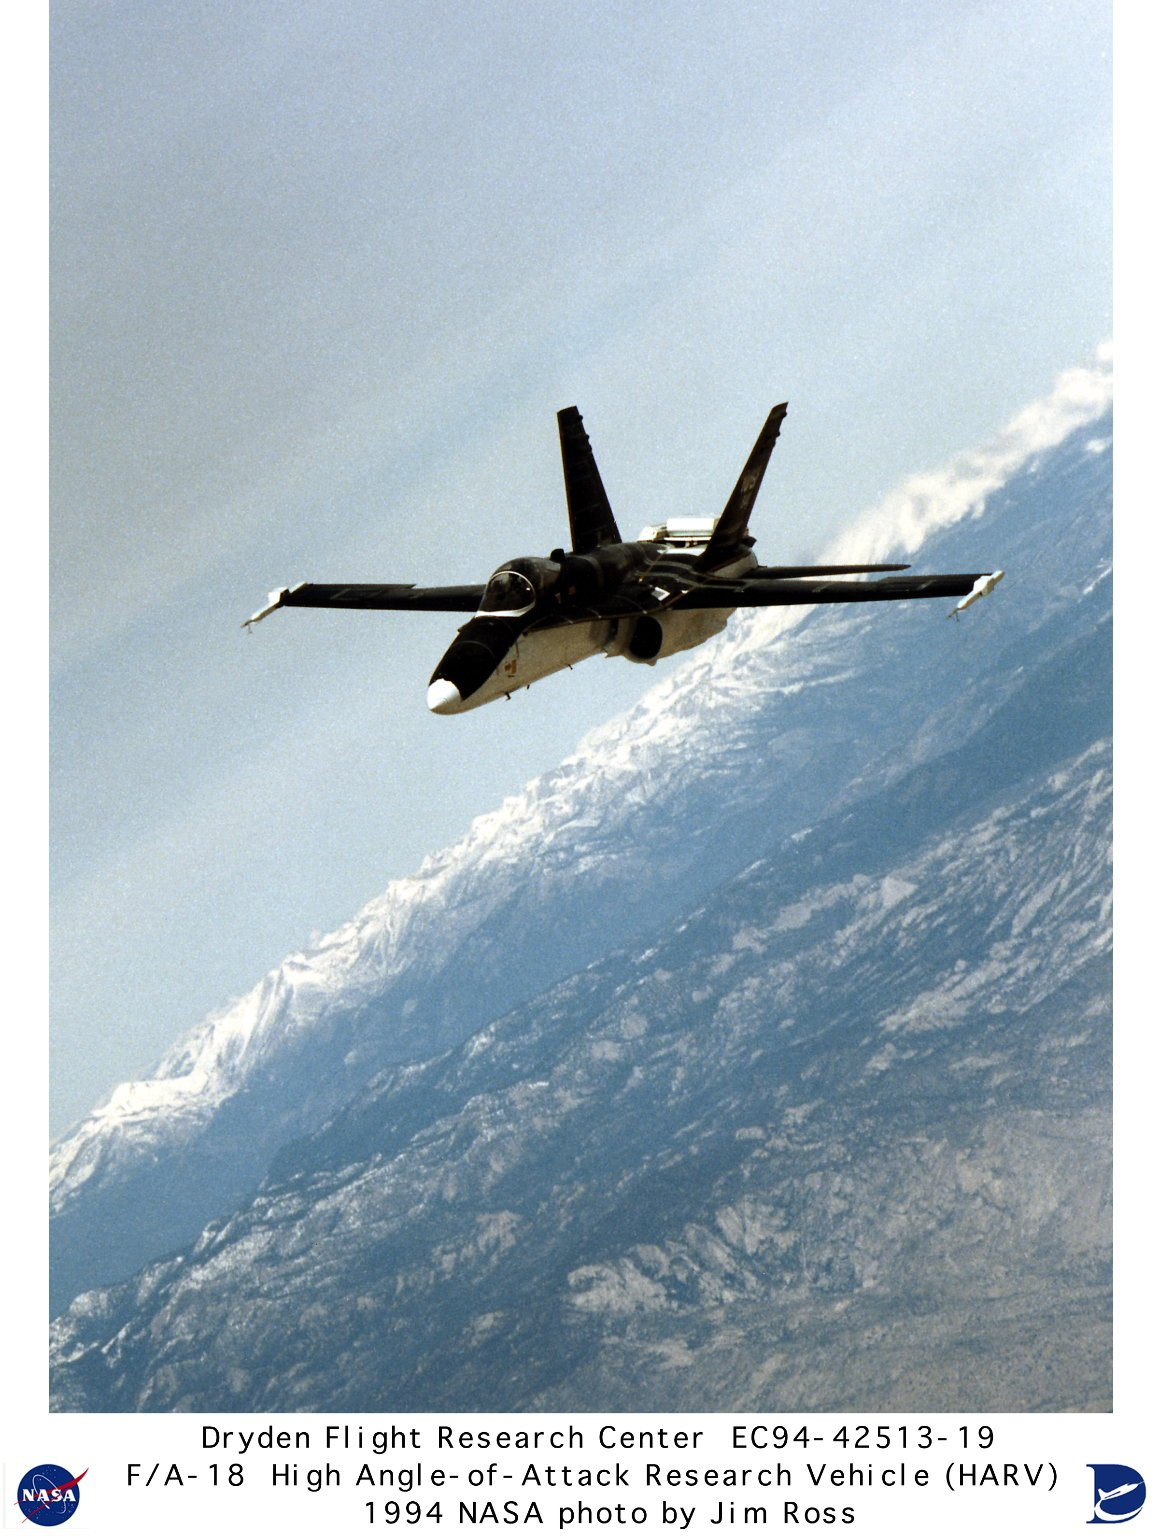 F-18 HARV in banked flight over snow-capped mountains